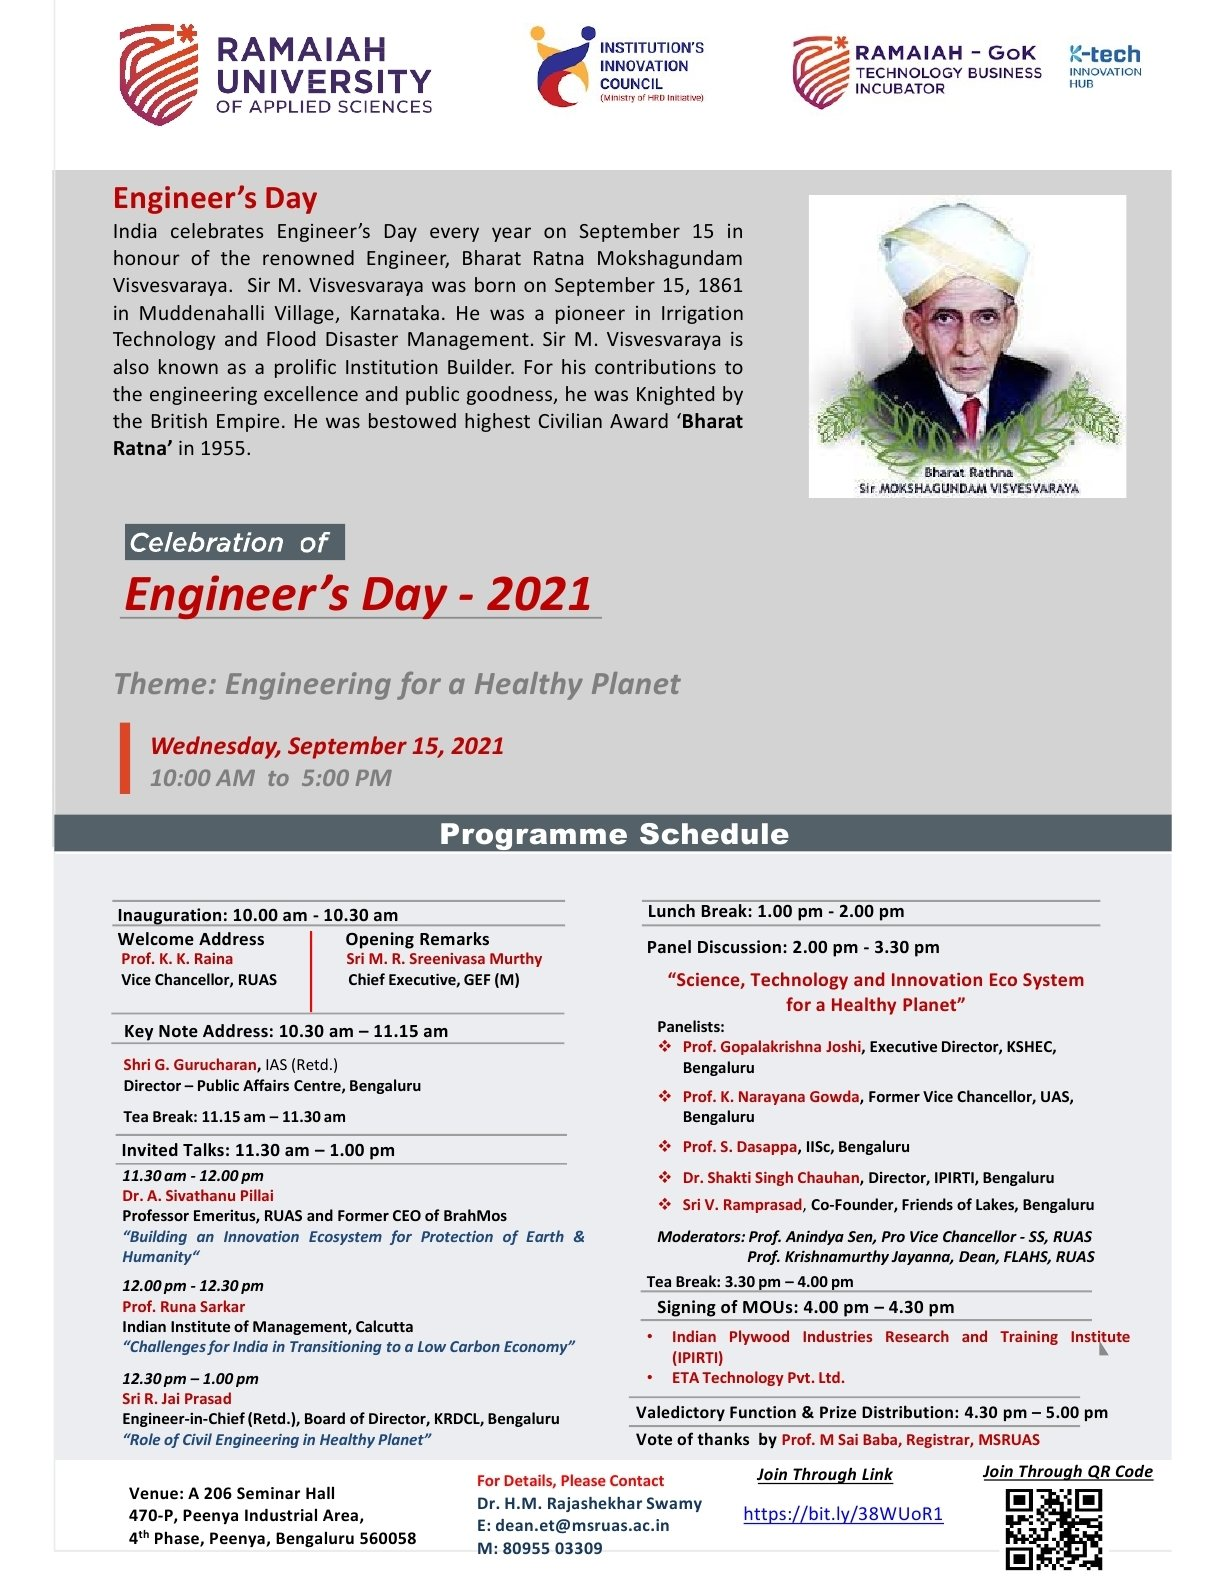 Engineers Day 2021